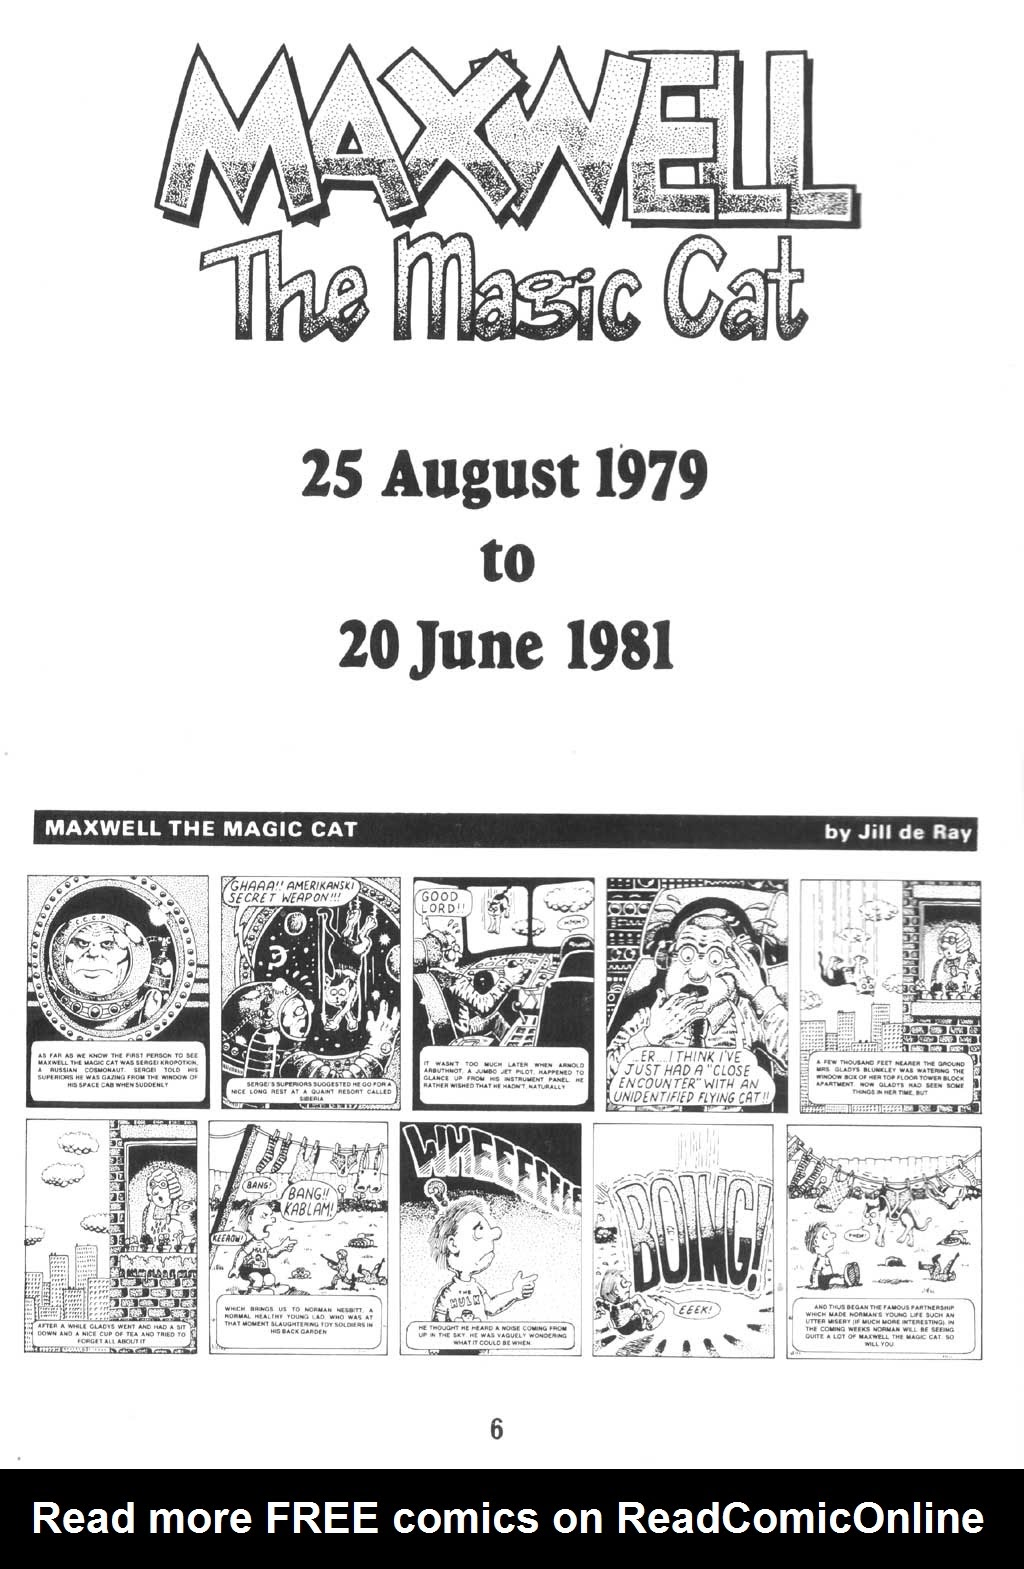 Read online Alan Moore's Maxwell the Magic Cat comic -  Issue #1 - 5